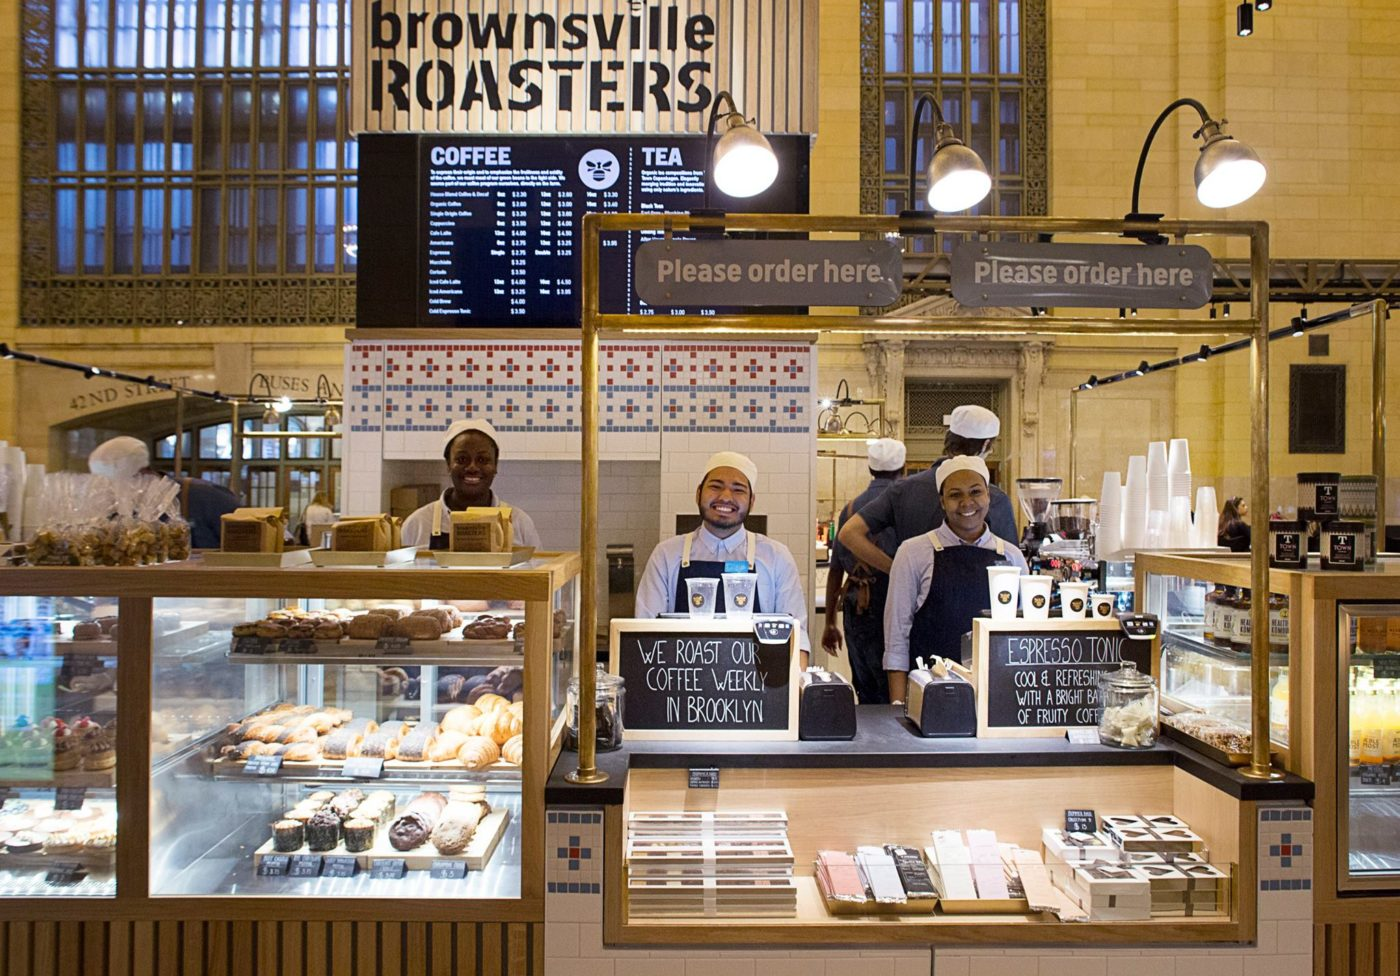 brownsville roasters